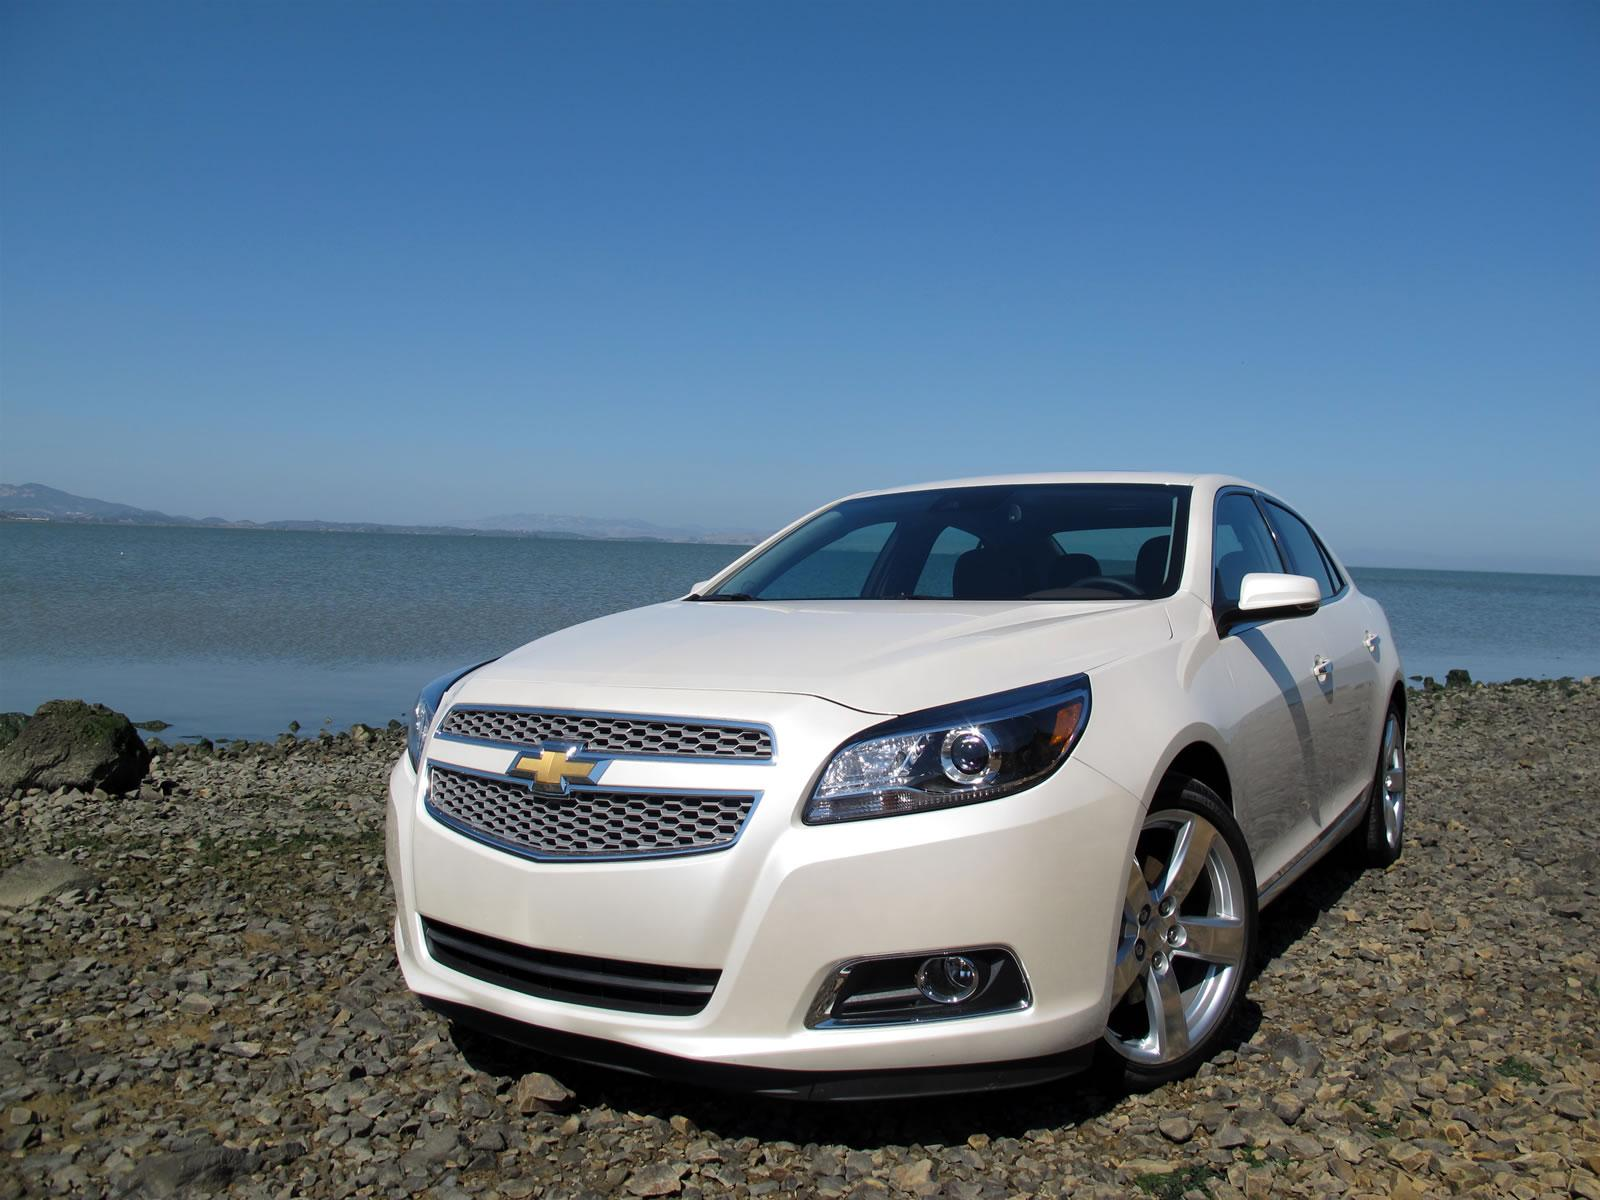 chevrolet malibu ltz 2 0 turbo 2013 lo manejamos en san francisco. Black Bedroom Furniture Sets. Home Design Ideas